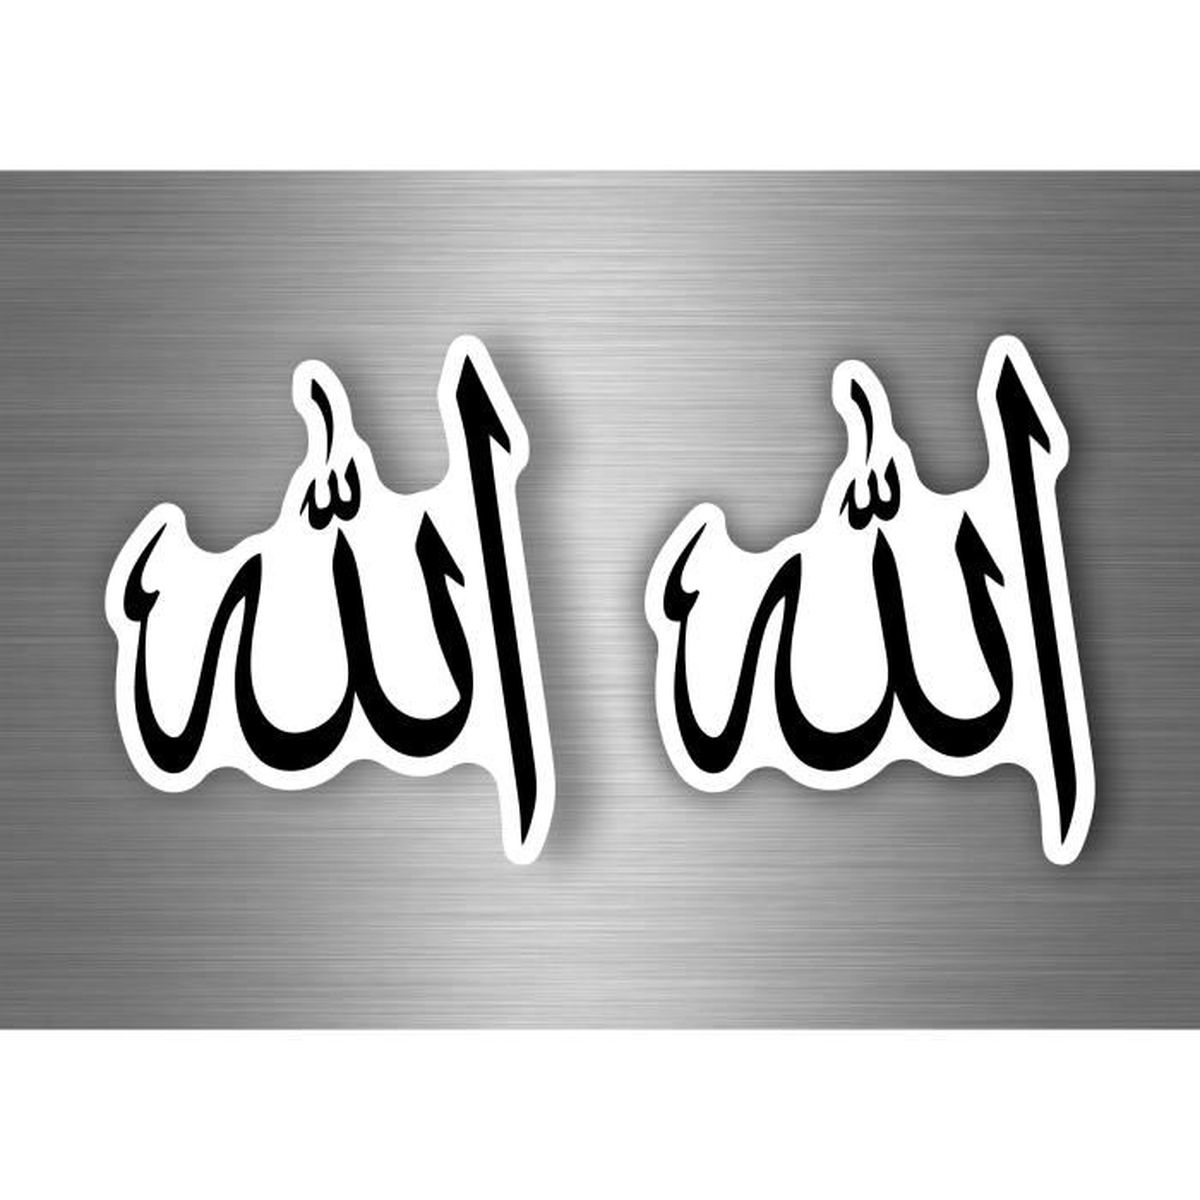 Stickers Islam Pas Cher 2x autocollant sticker voiture moto taille islam calligraphie arabe allah r1